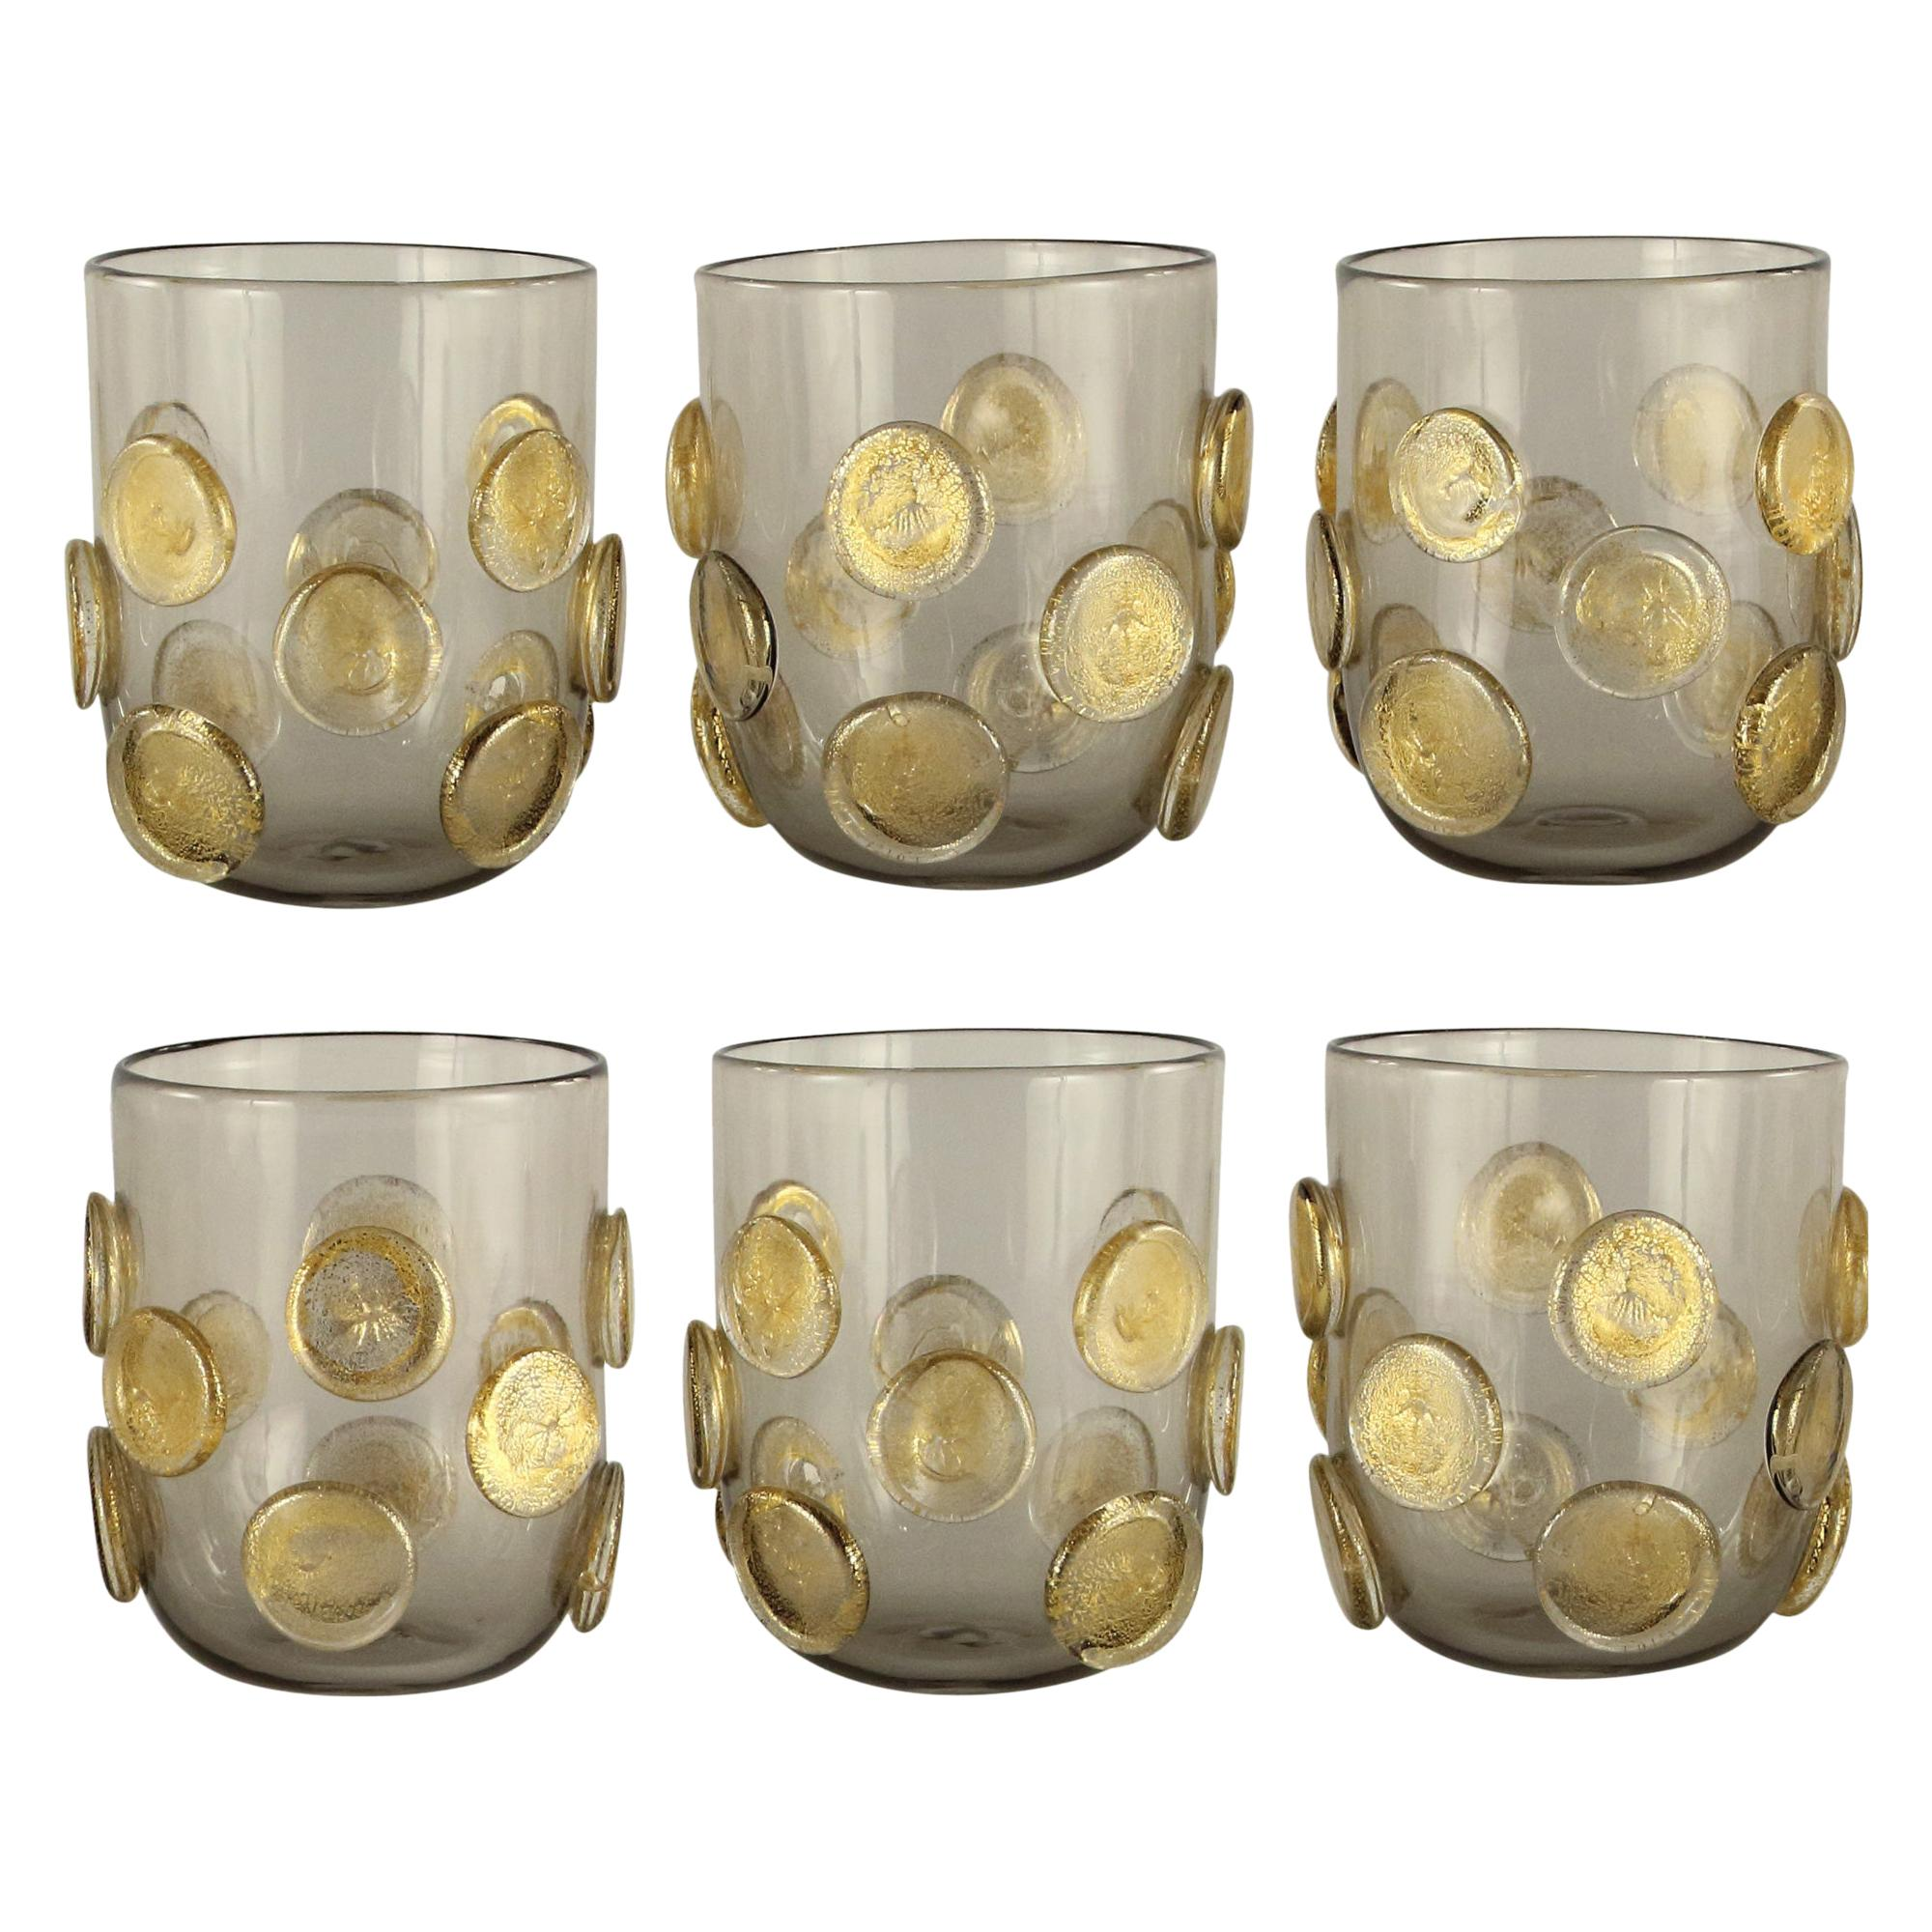 Set of 6 Artistic Handmade Glasses Murano grey Glass Gold Details by Multiforme